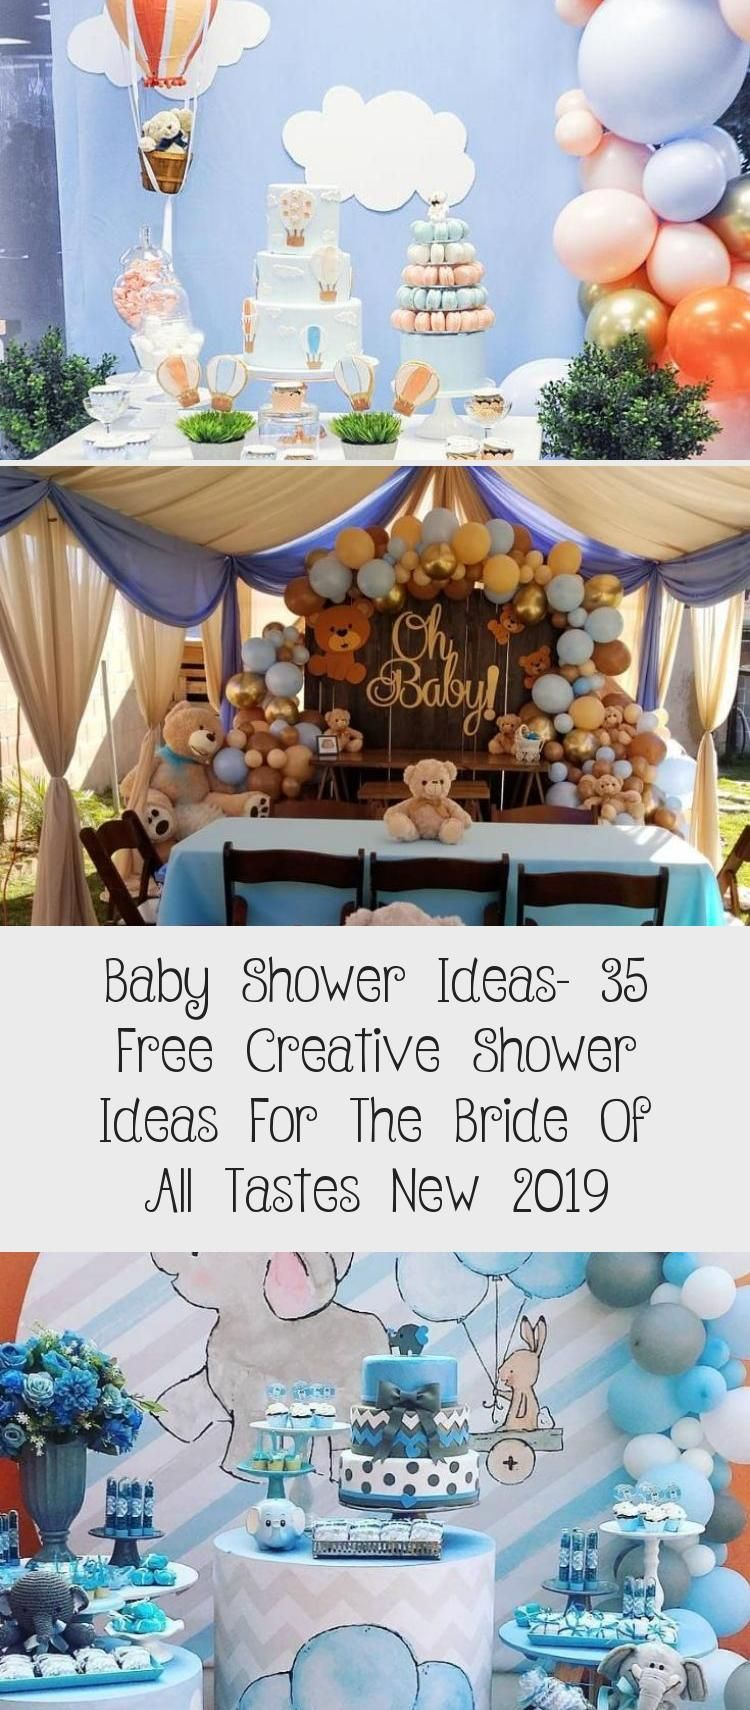 Shower Ideas 35 Free Creative Shower Ideas For The Bride